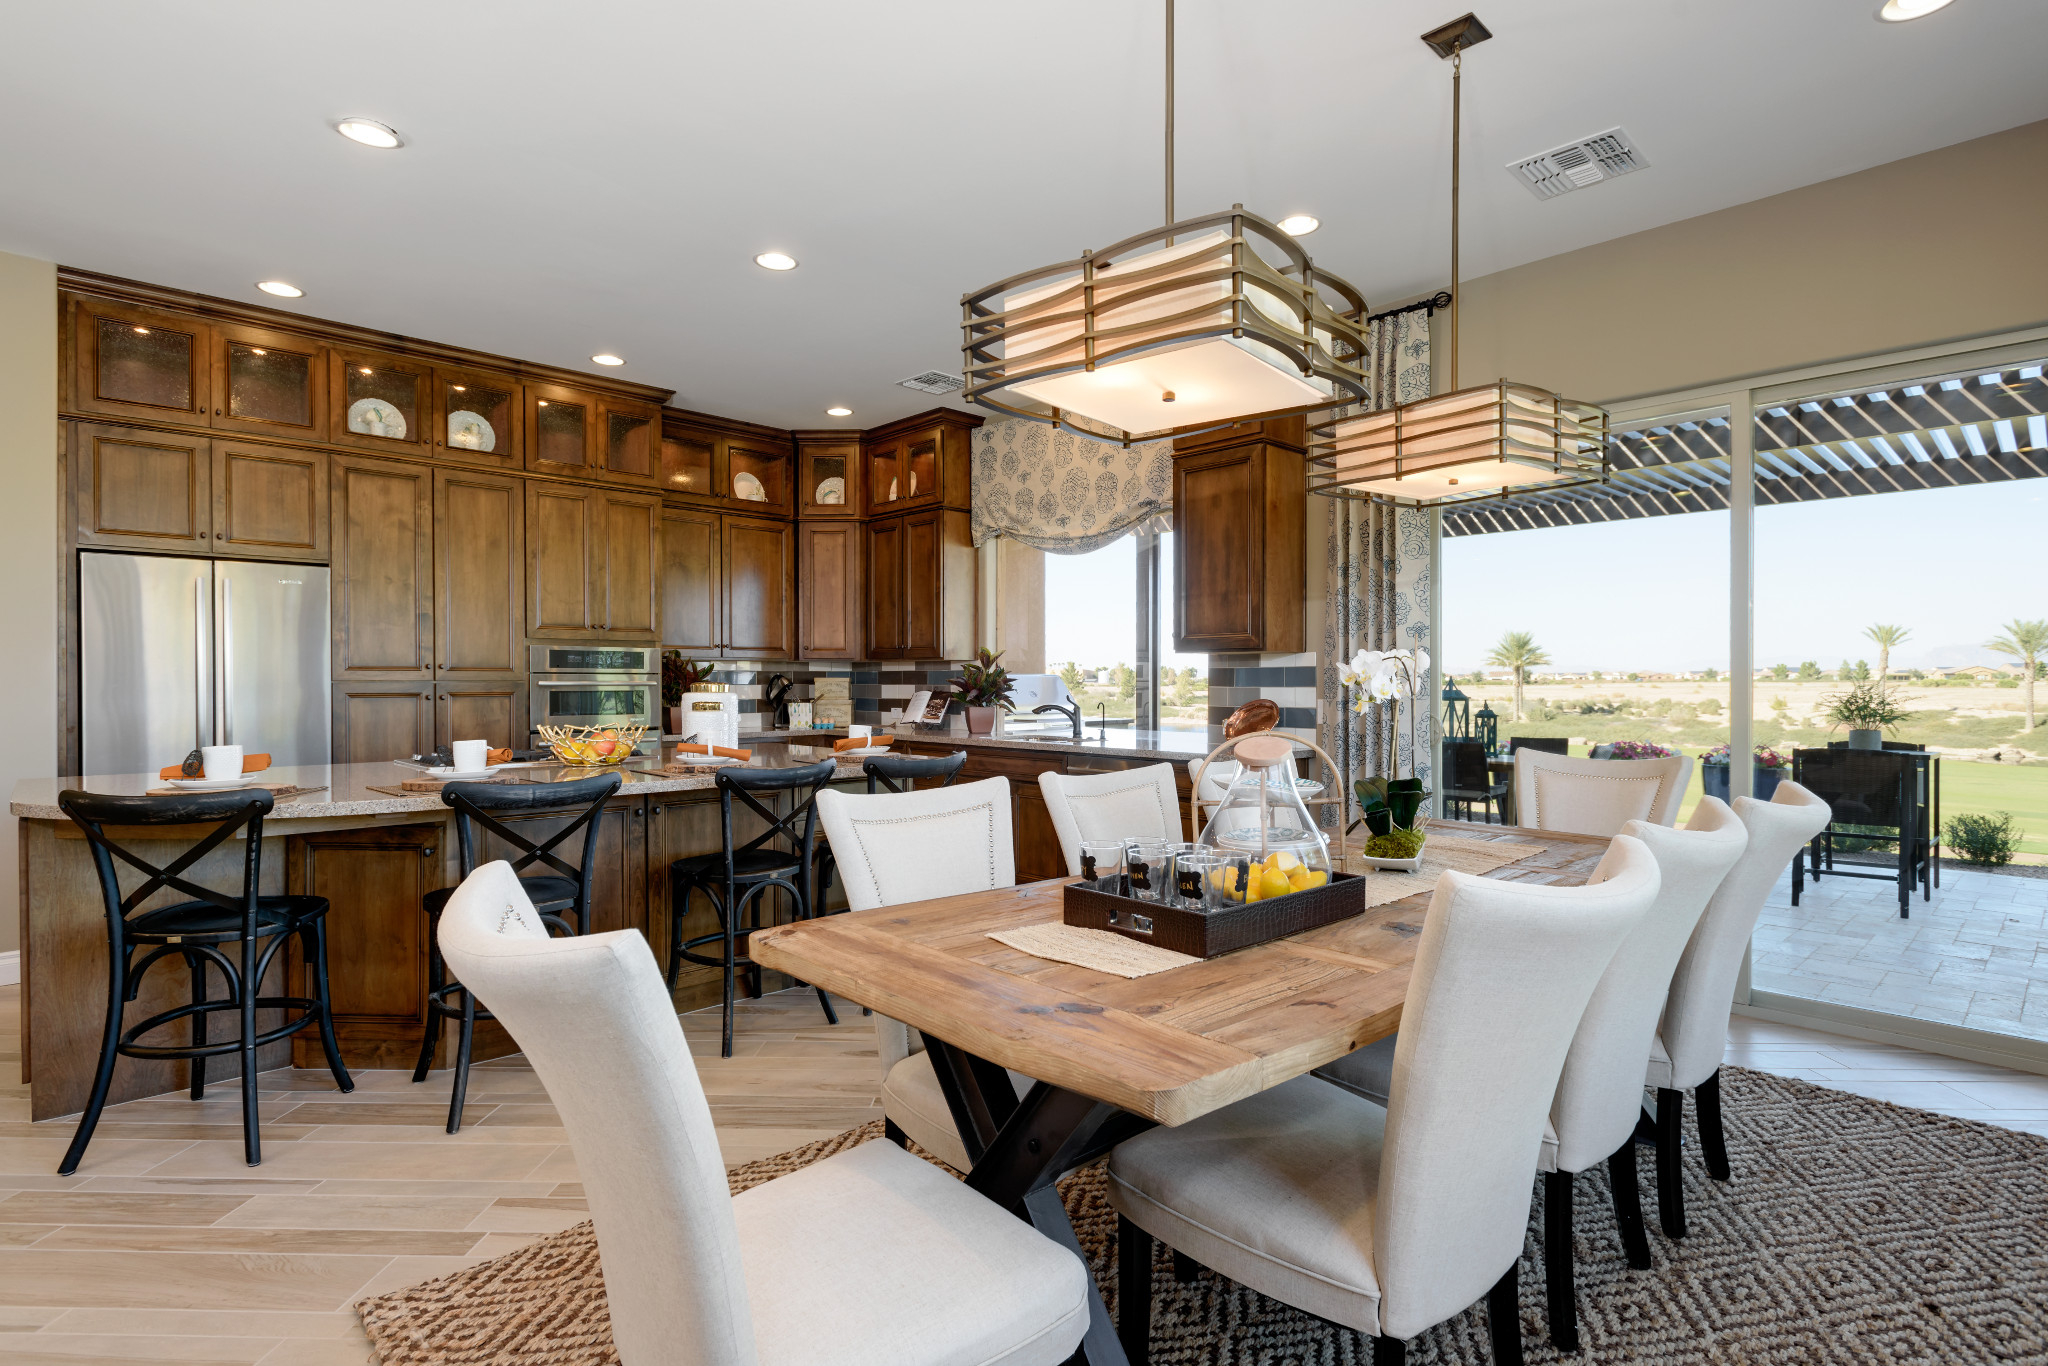 Captivate Model Dining Room